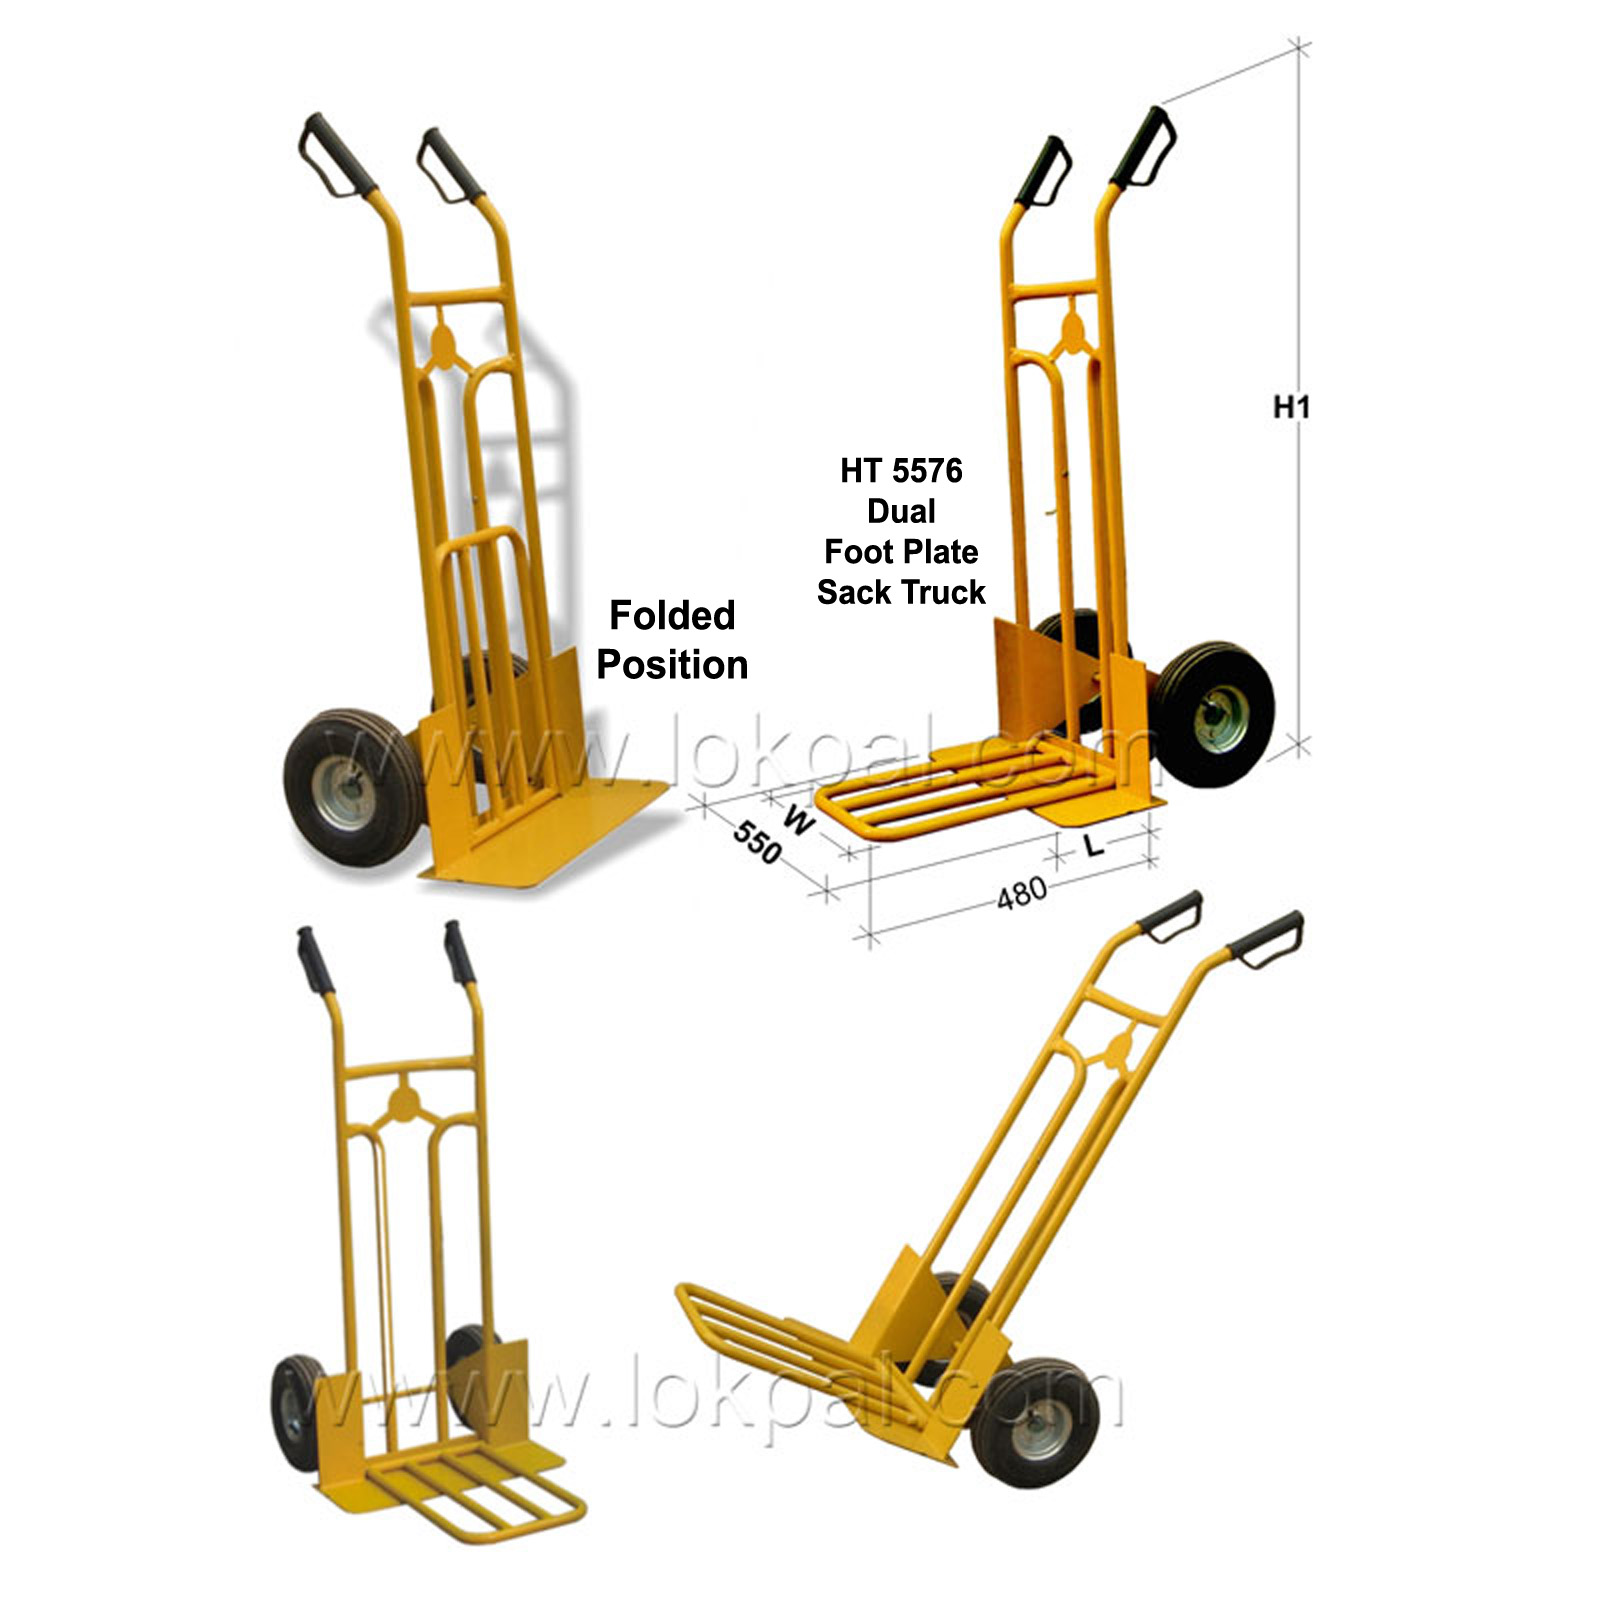 Stair Climbing Trolley Hand Truck, Stair Climbing Trolley Dealers, Hand Truck Distributor, Stair Climbing Trolley Manufacturer, Hand Truck Delhi NCR, Noida, India